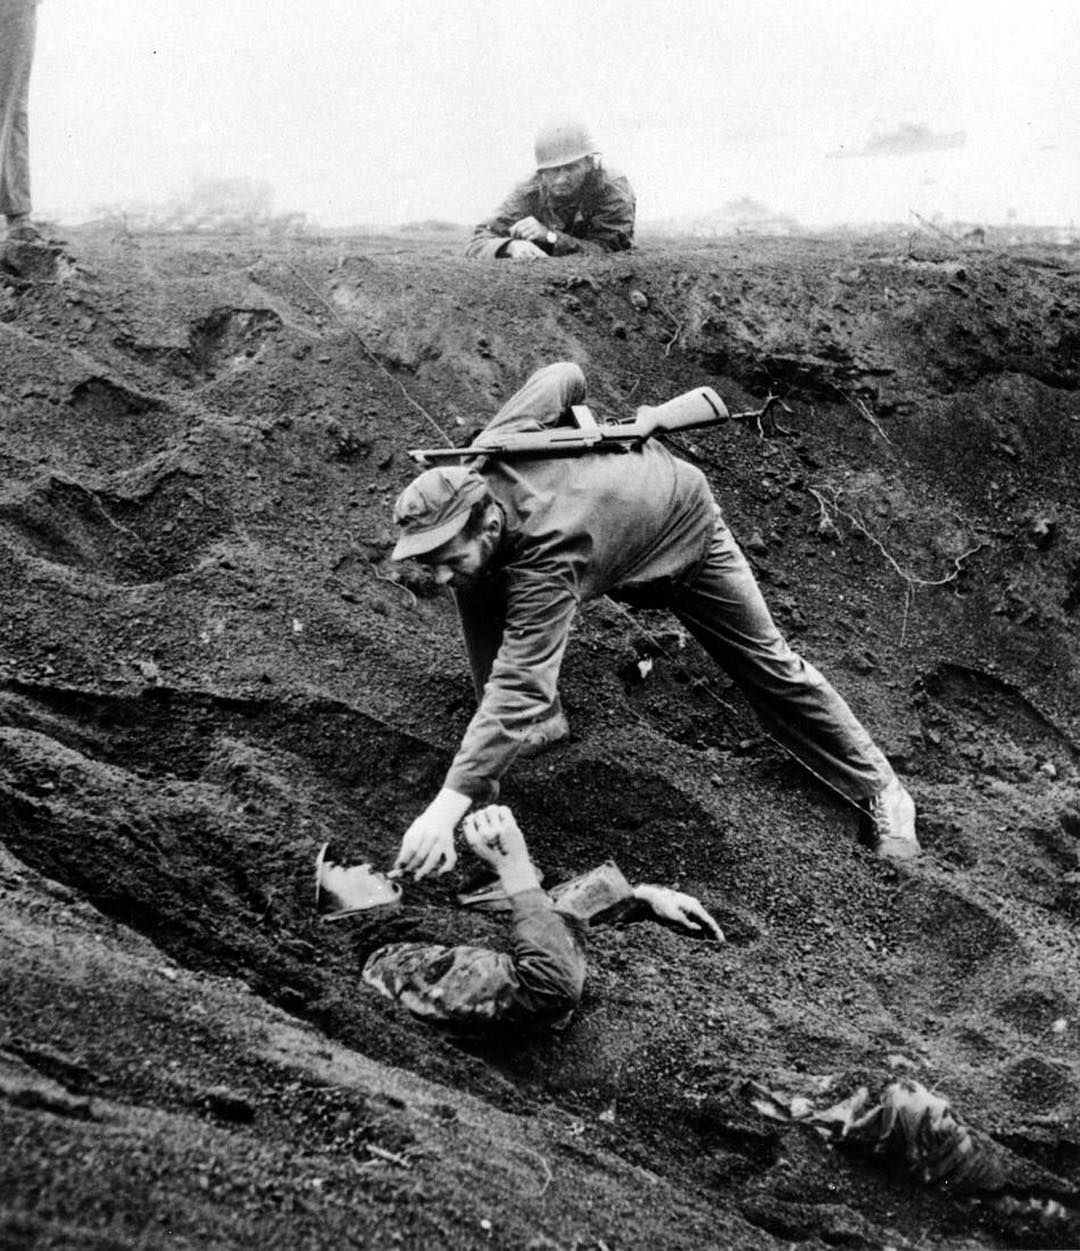 """5,776 Me gusta, 31 comentarios - Historians Union (@ww2_daily_photography) en Instagram: """"A United States Marine approaches a Japanese soldier on Iwo Jima. The soldier was buried in sand…"""""""